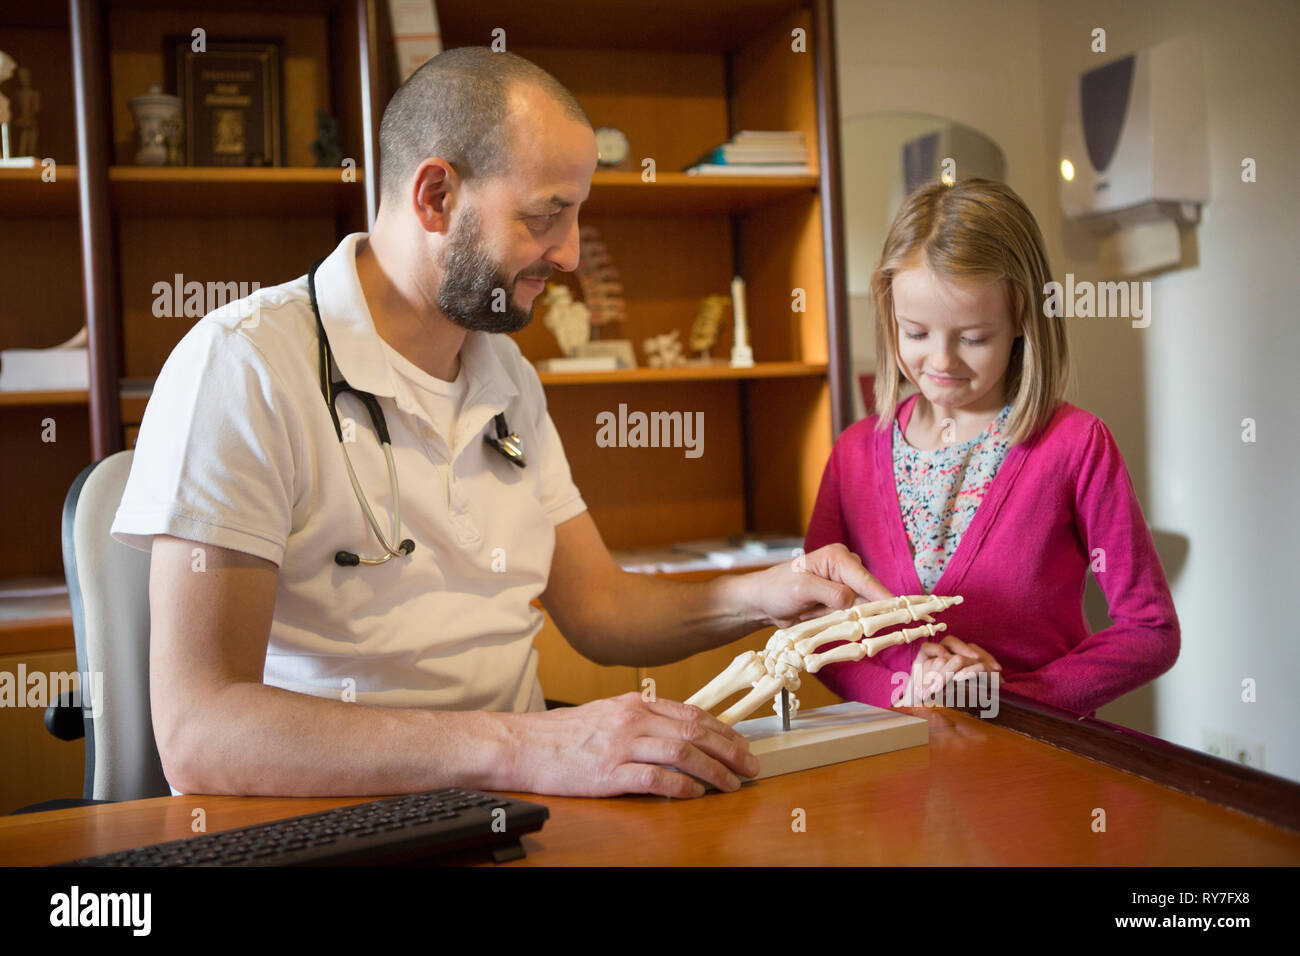 Doctor showing a child a replica model of the bones in a human hand - Stock Image